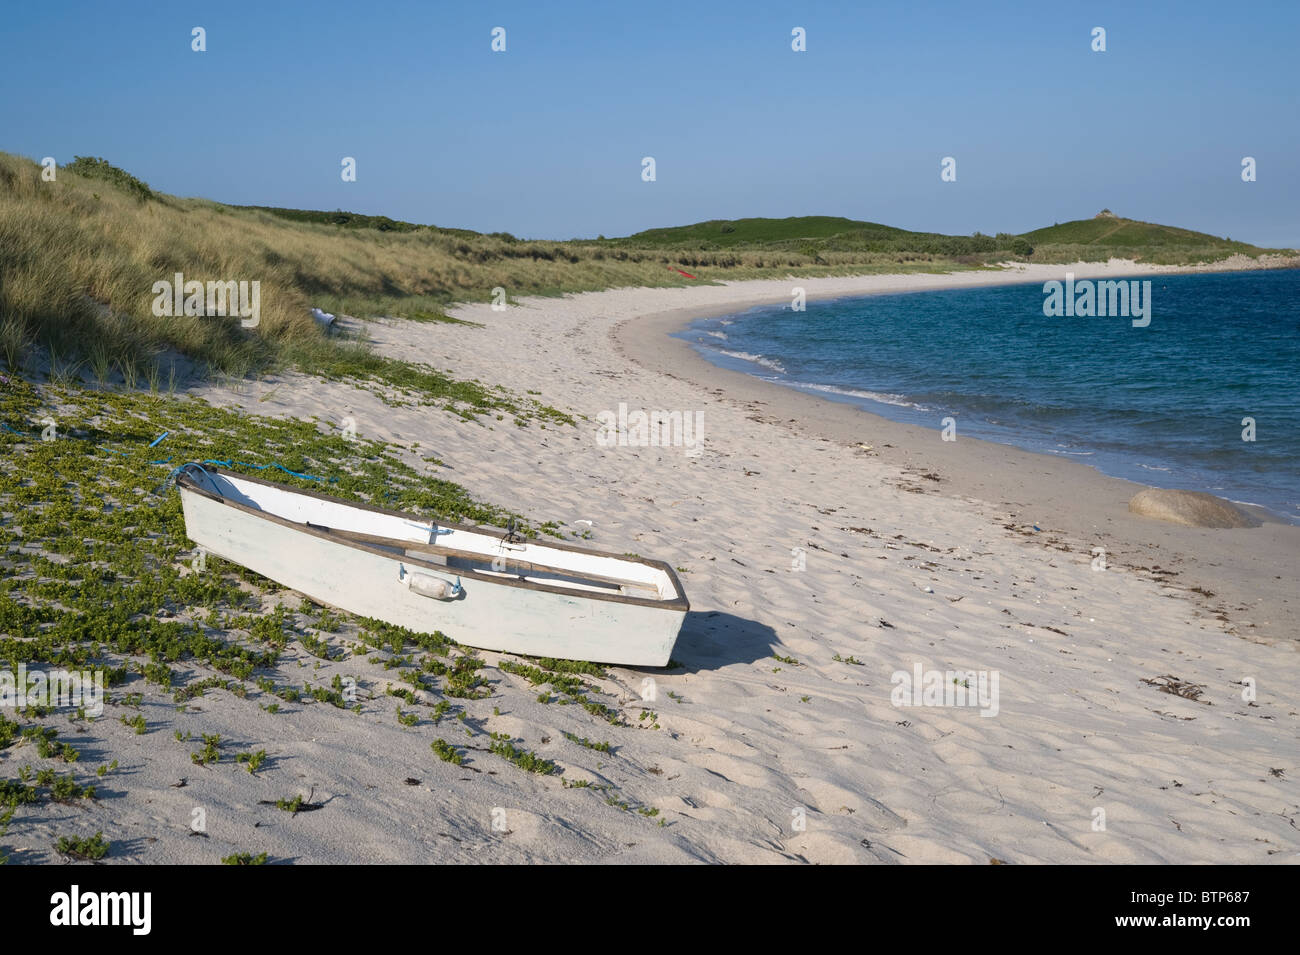 Higher Town bay beach on St. Martin's, Isles of Scilly, UK. - Stock Image